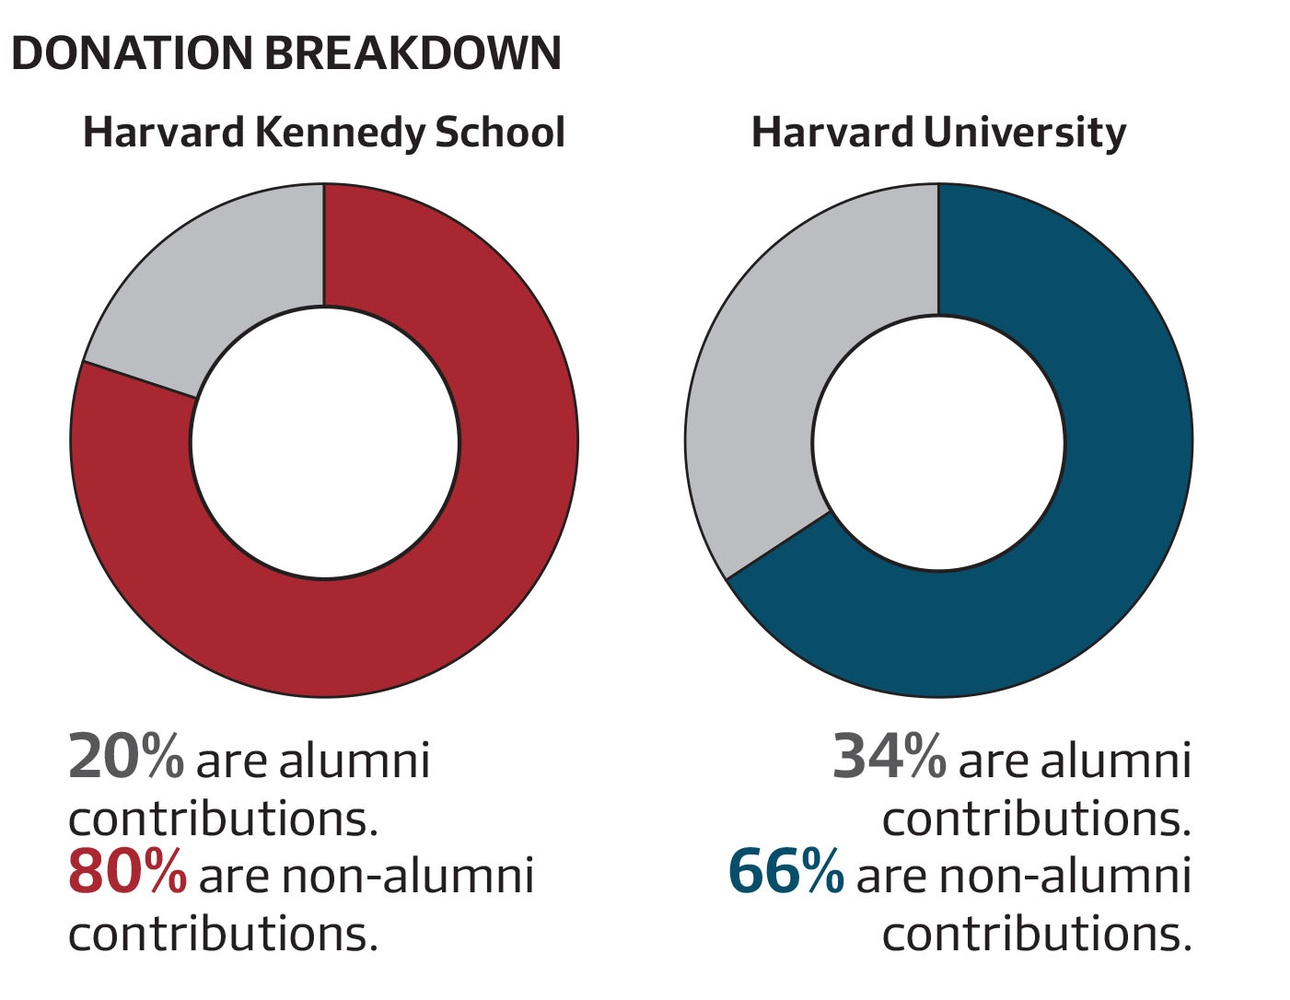 The Kennedy School of Government's donation pool comes disproportionately from non-alumni sources.